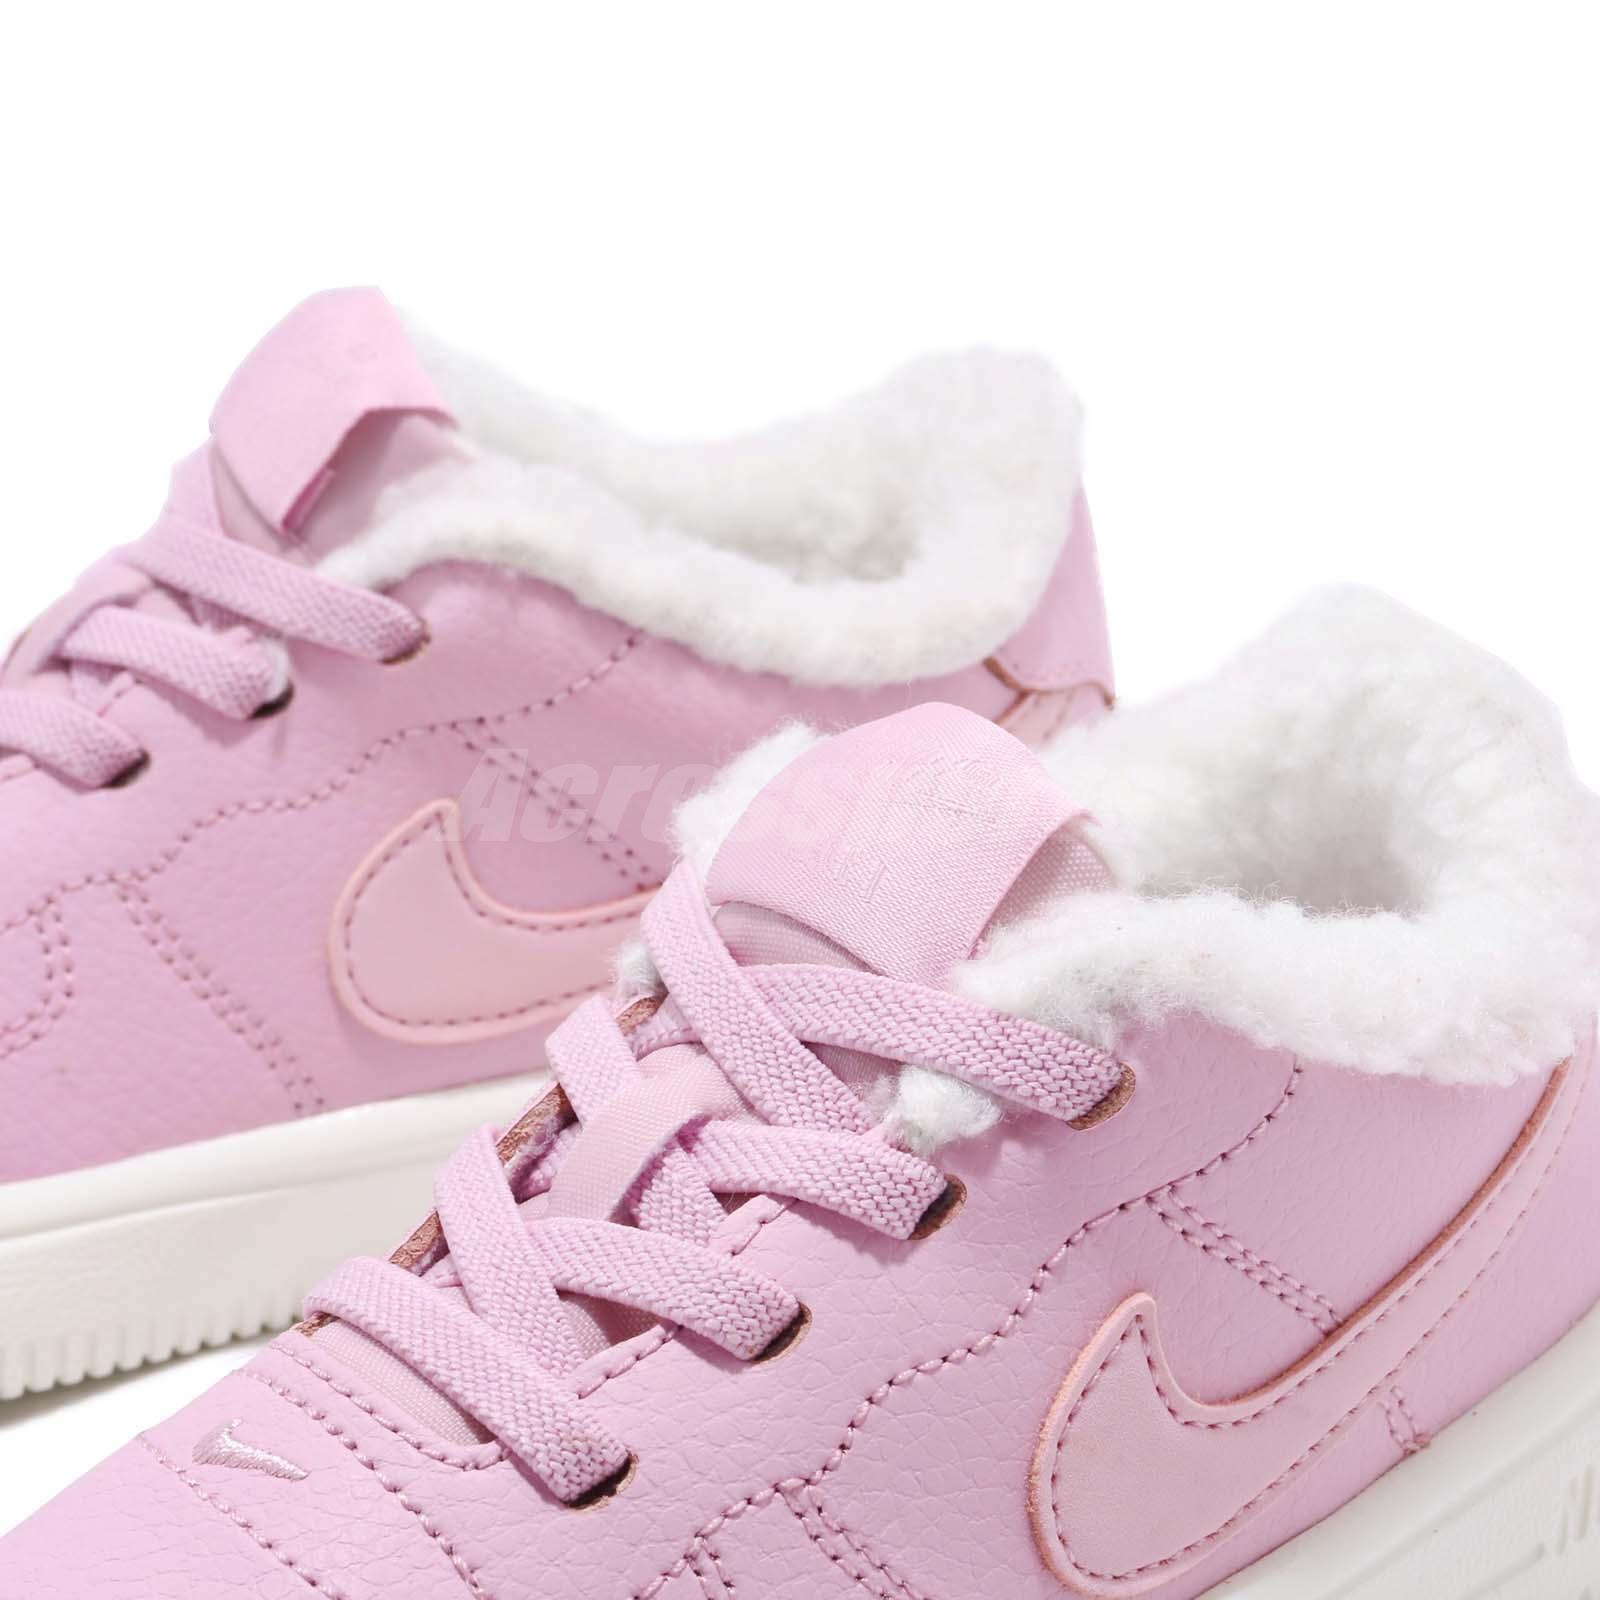 reputable site 504ac 84055 Nike Force 1 18 SE TD Light Arctic Pink Toddler Infant Baby Shoes ...